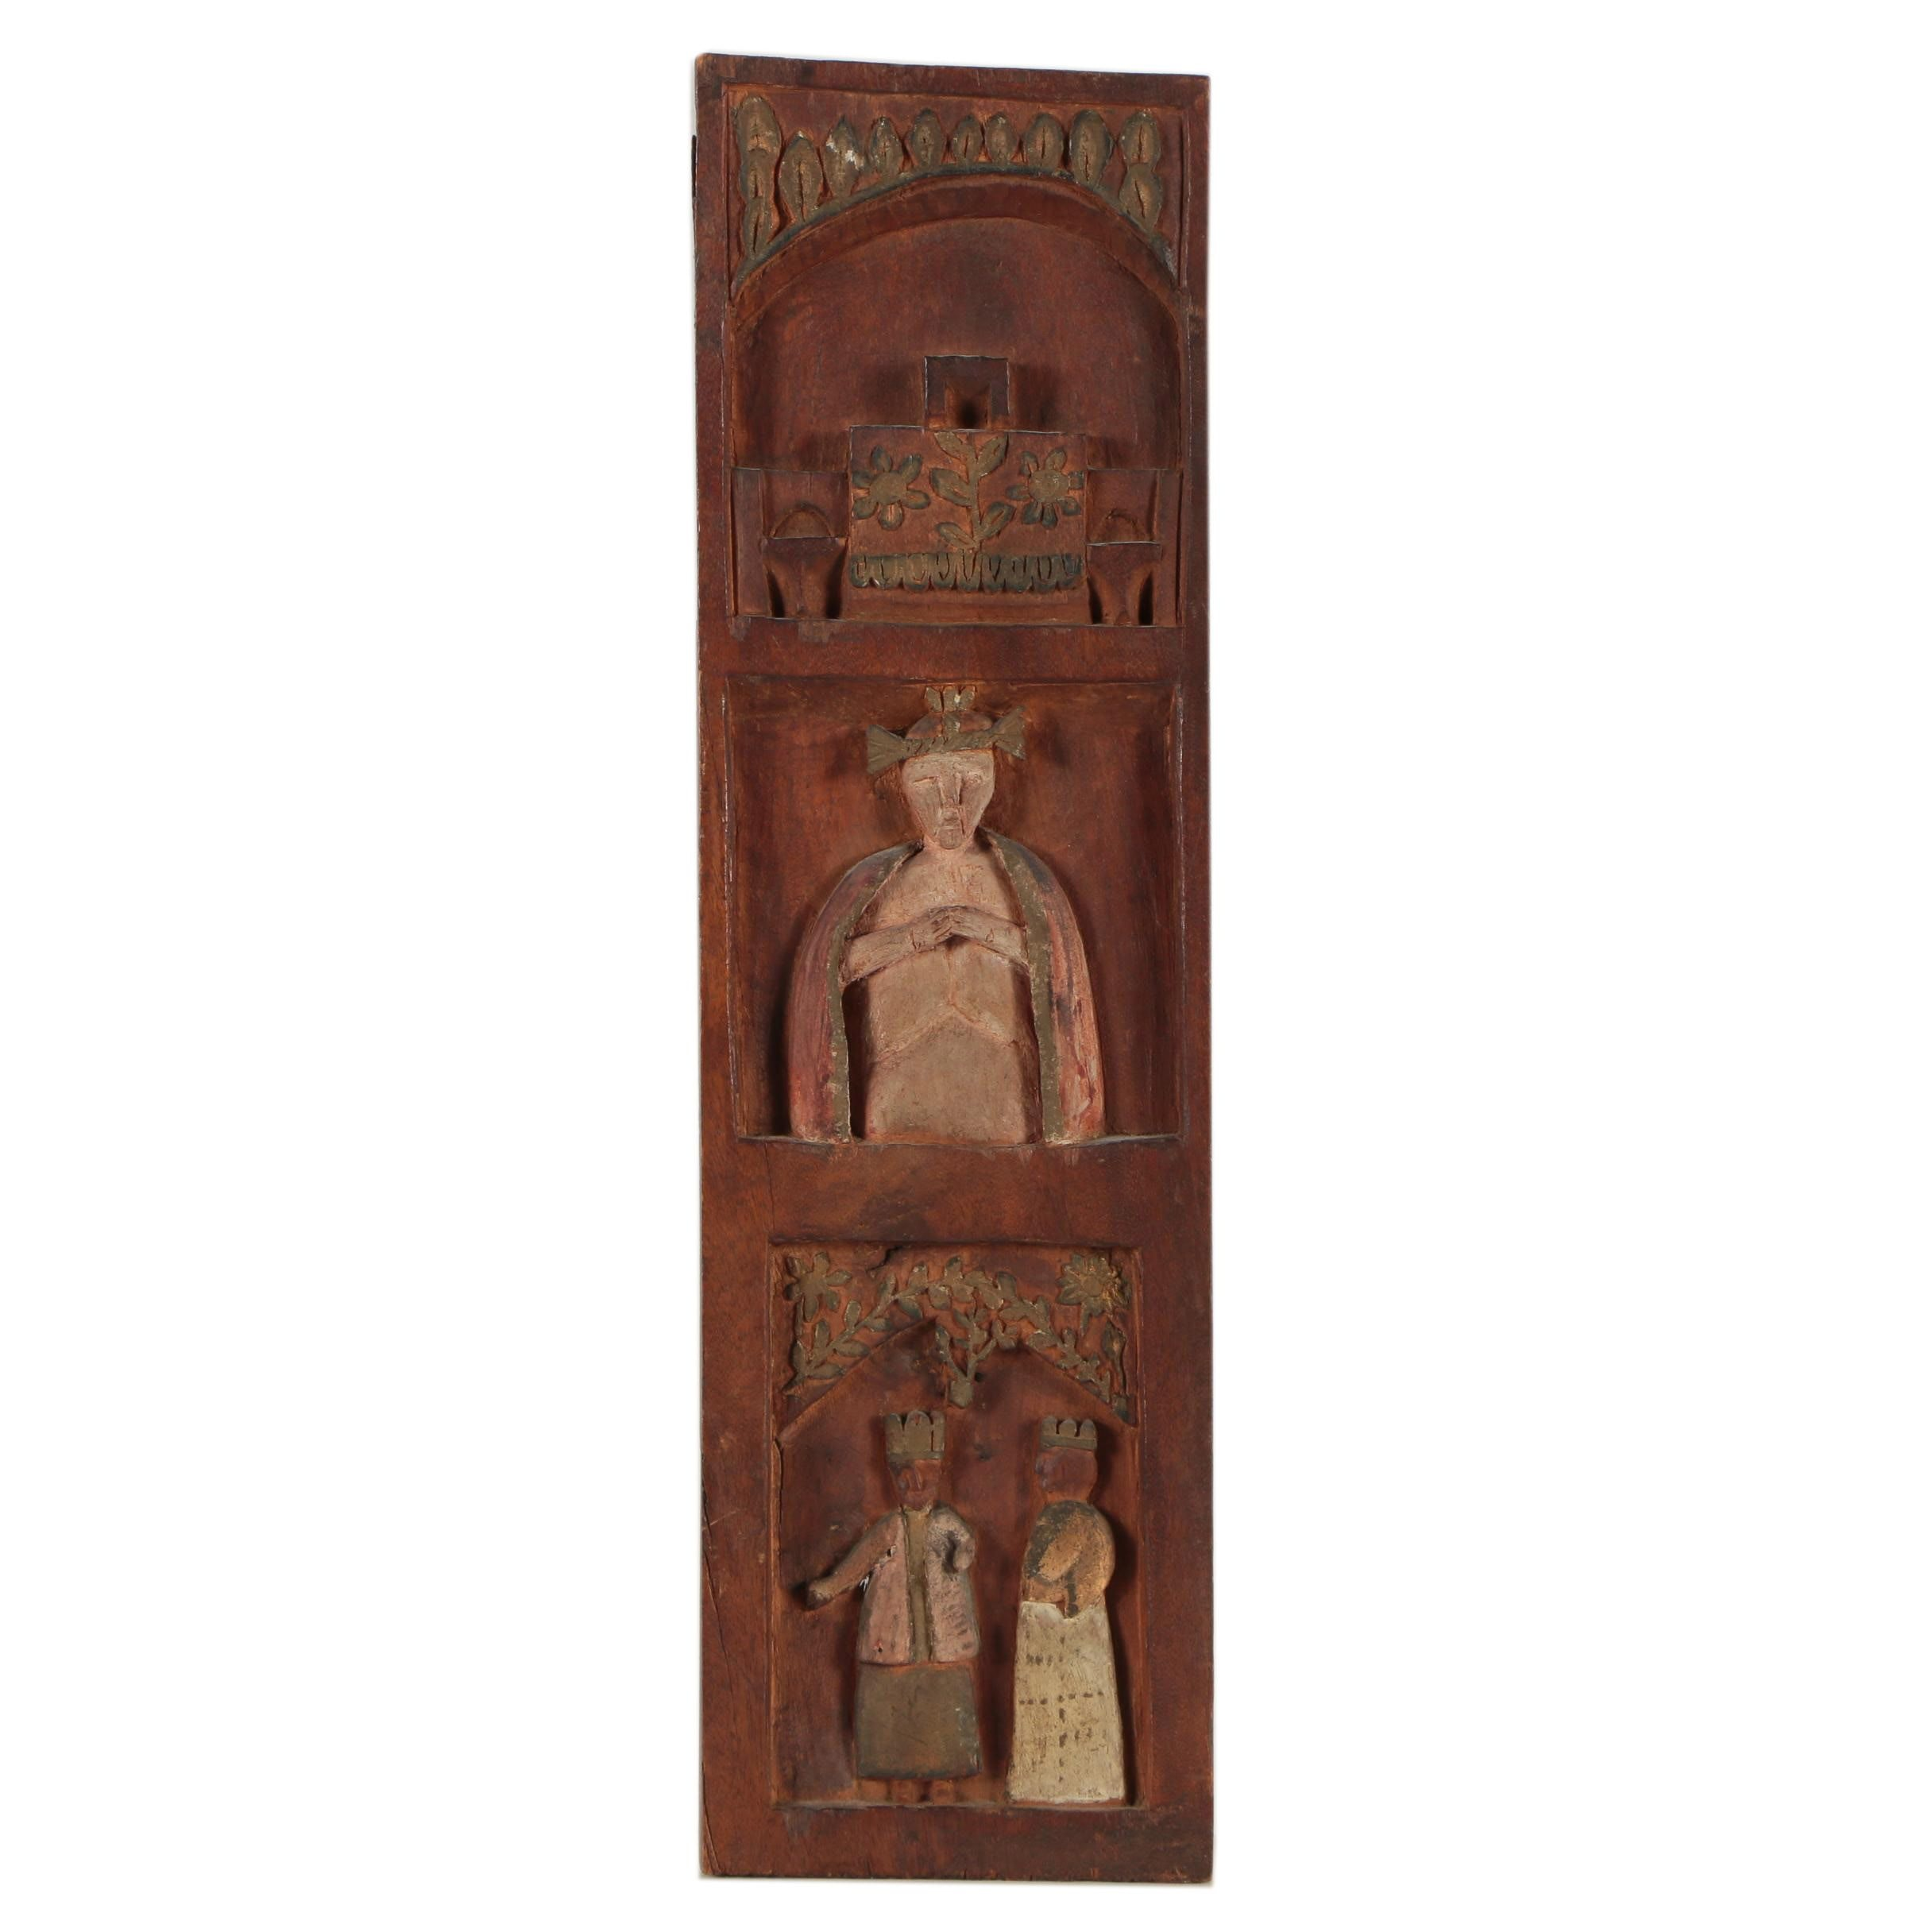 African Style Wood Carving of Figures